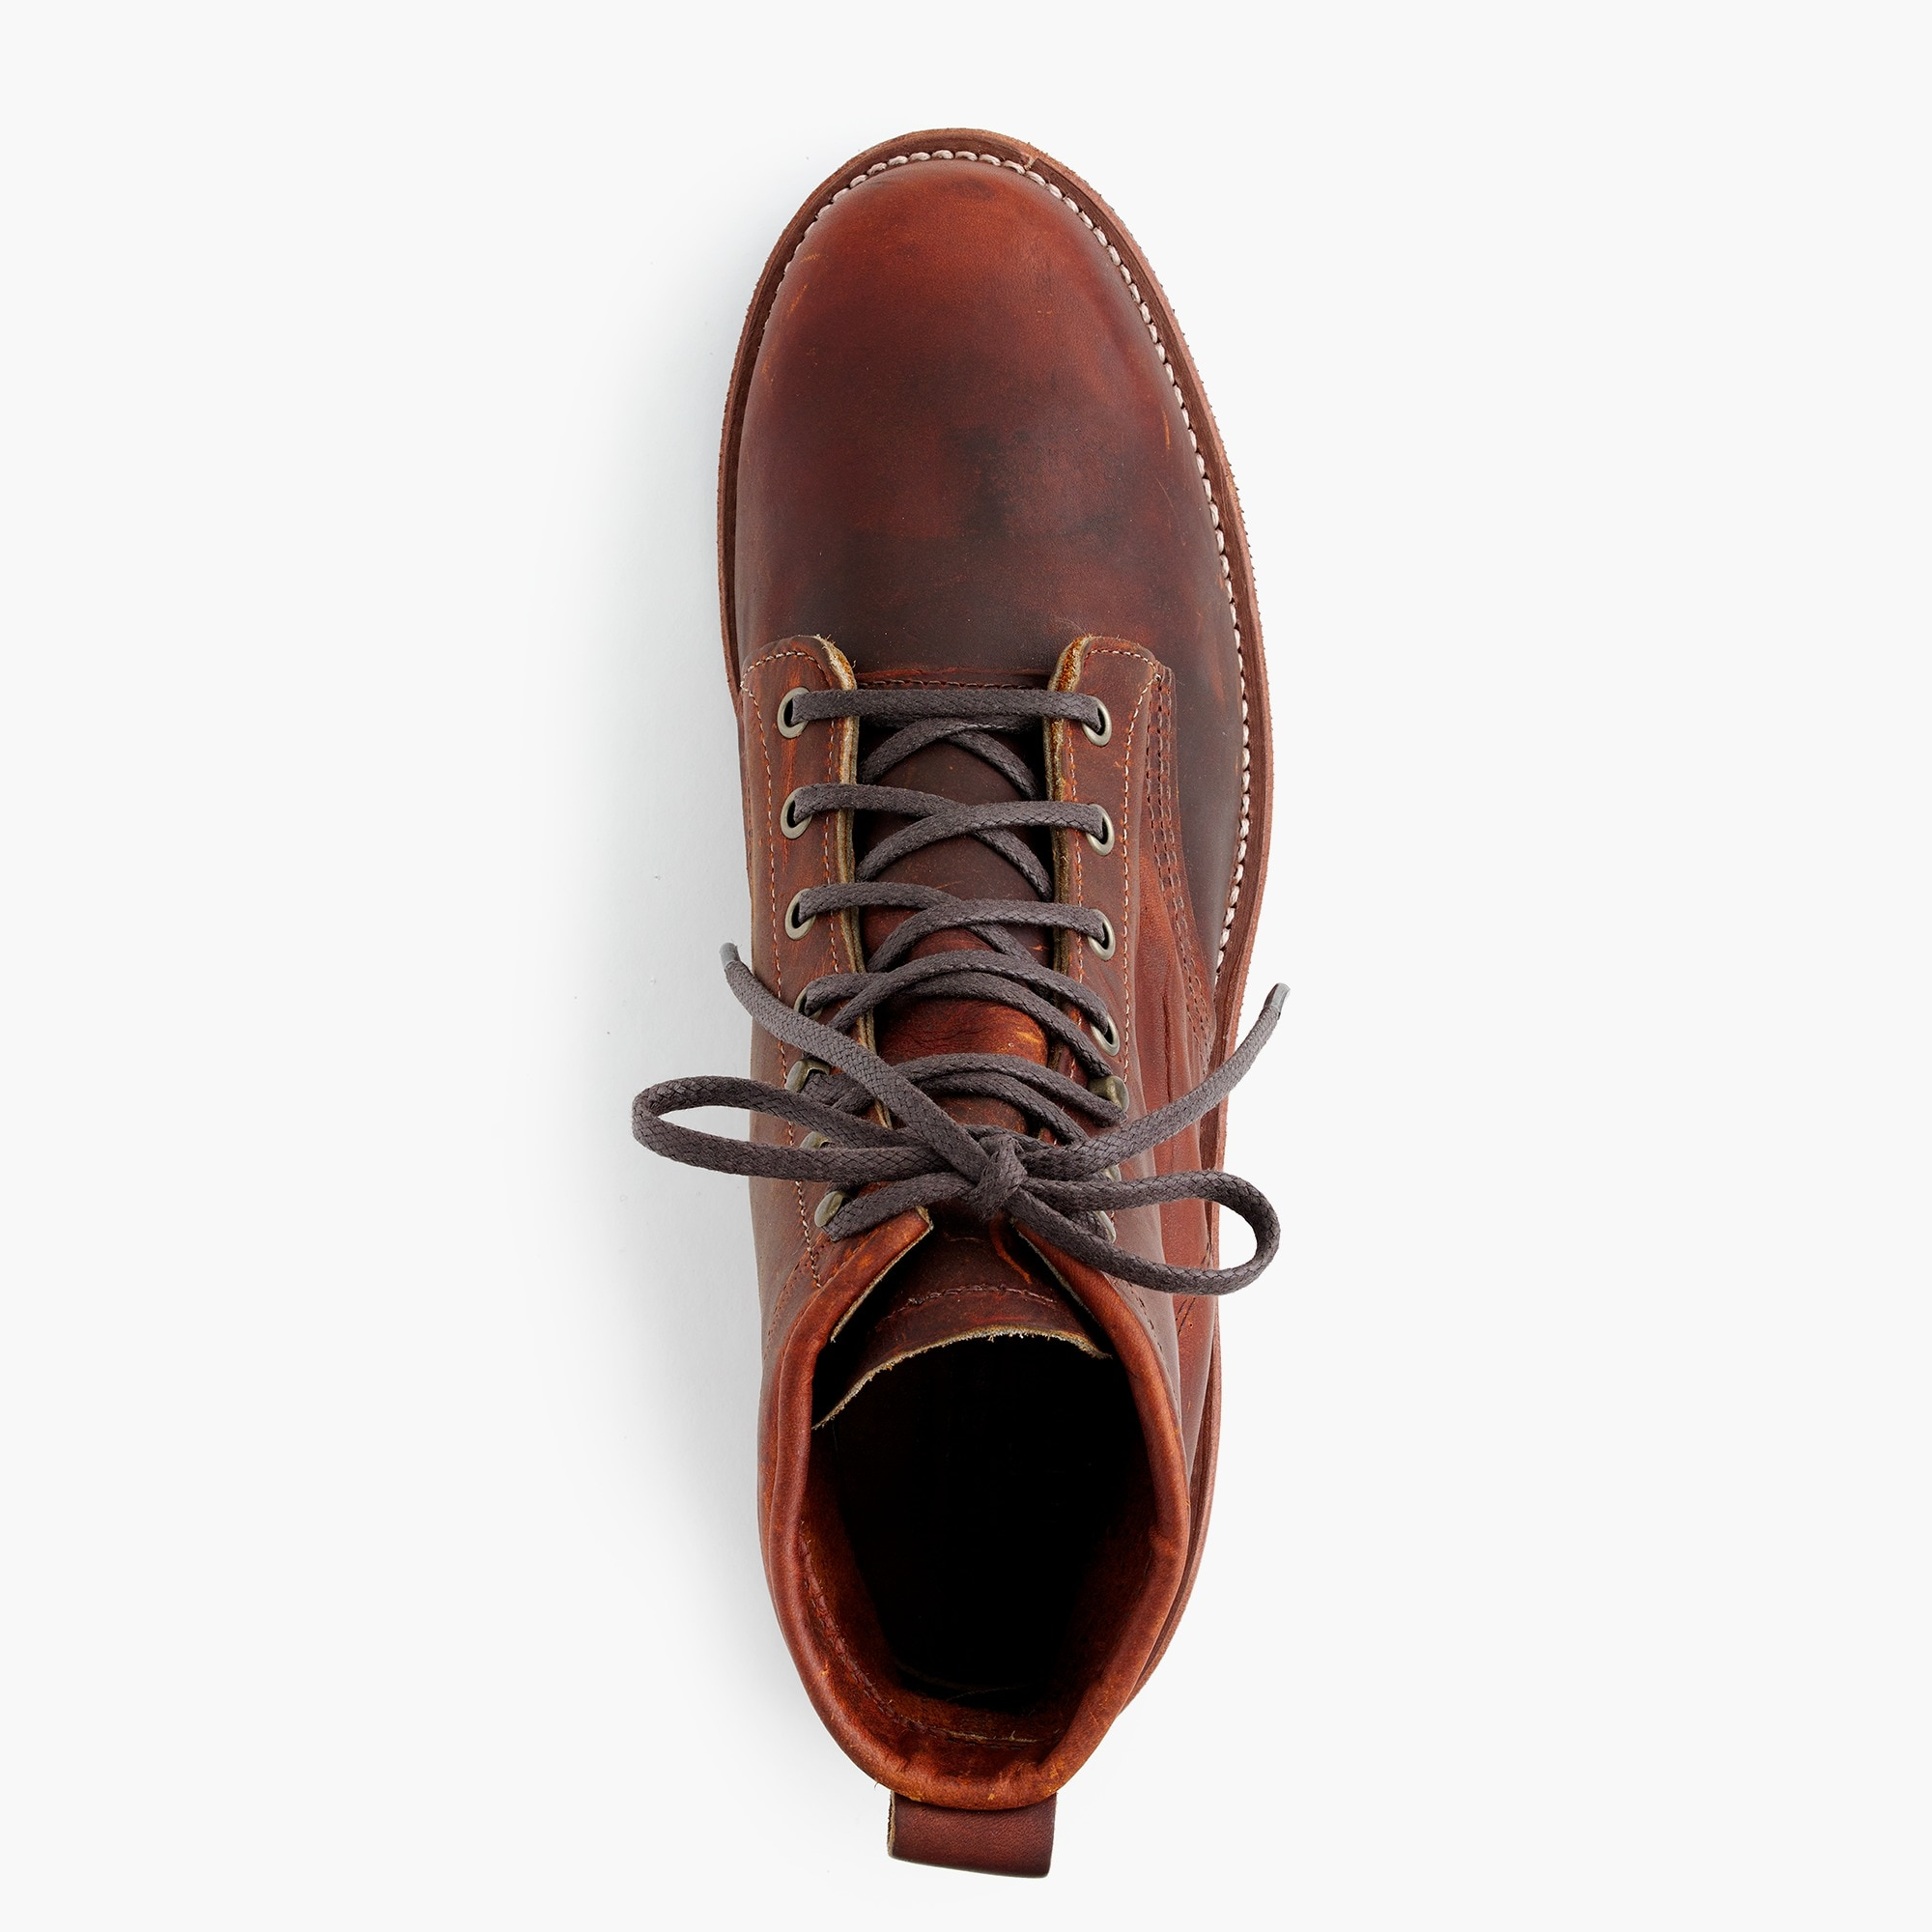 Image 2 for Original Chippewa® for J.Crew plain-toe Renegade boots